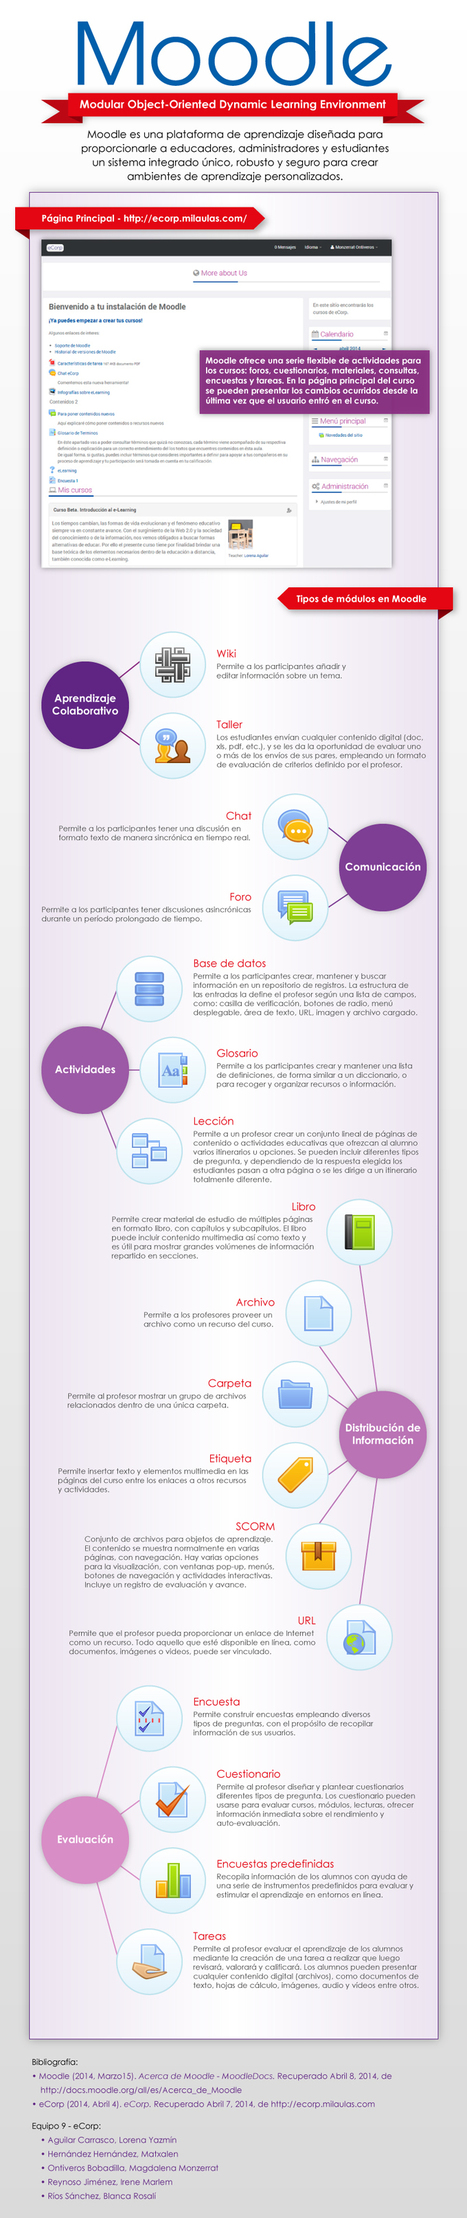 Moodle: qué es y elementos que lo integran #infografia #infographic #education | mOOdle_ation[s] | Scoop.it